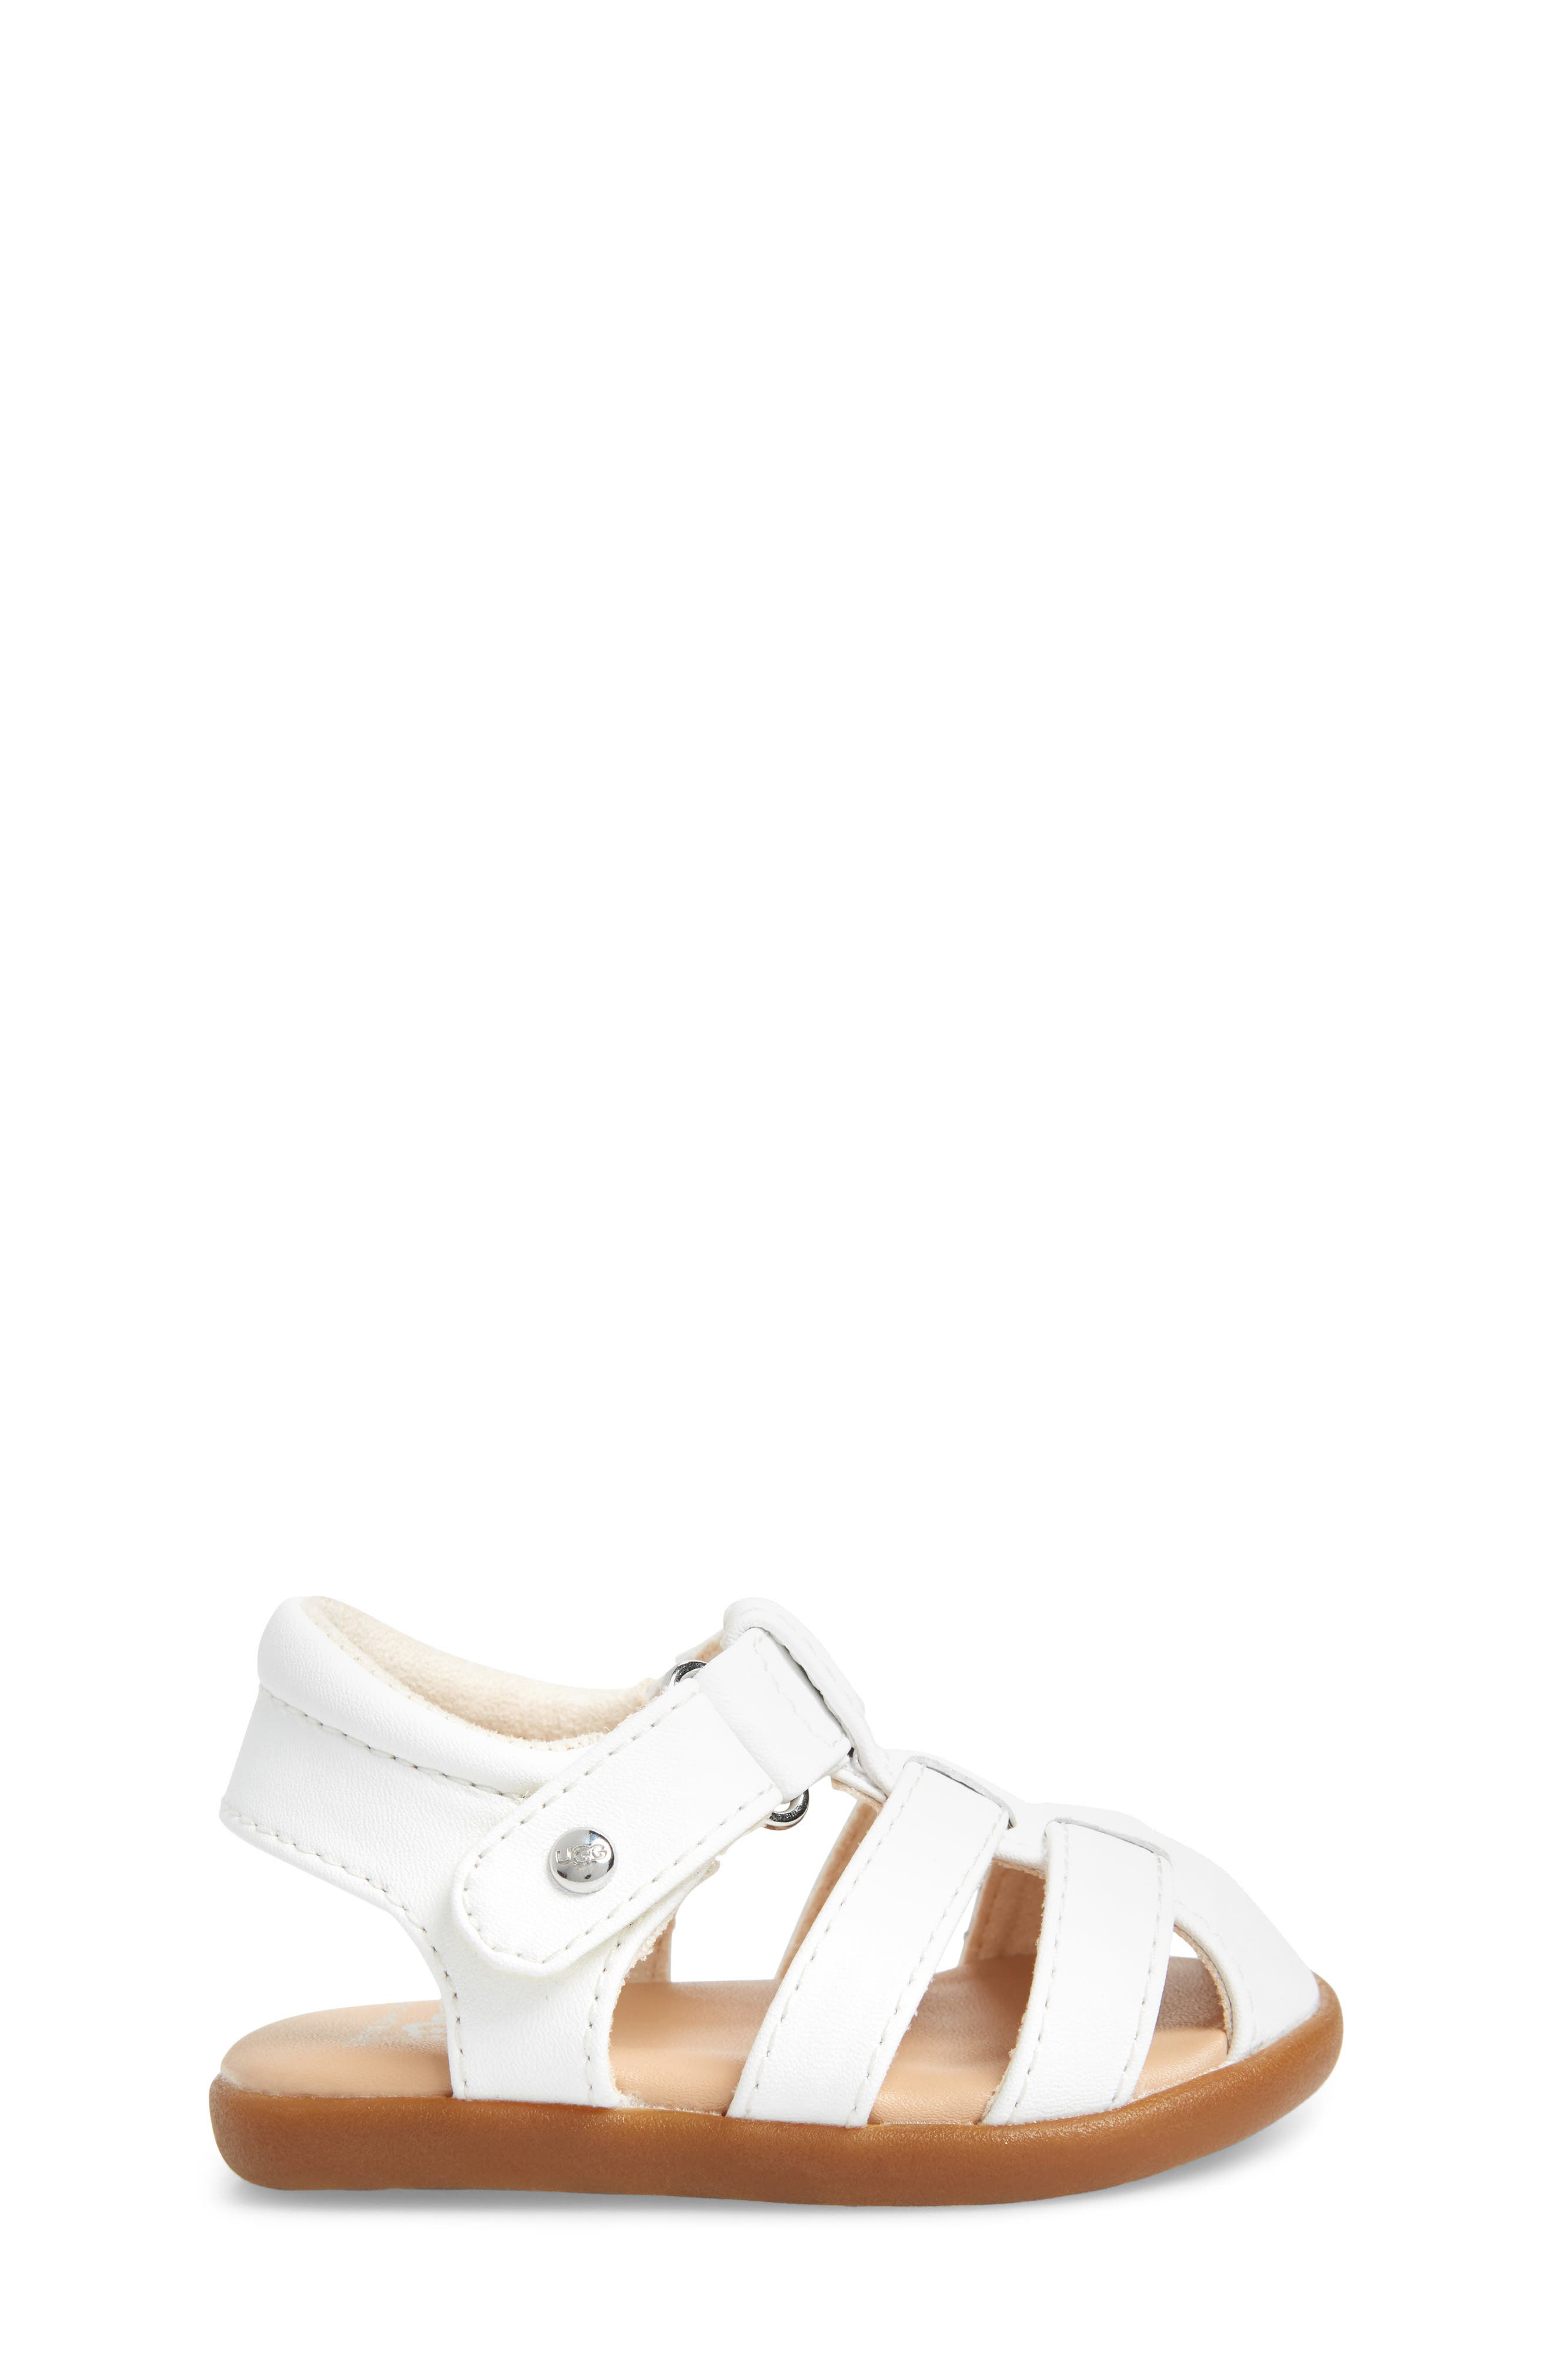 UGG<SUP>®</SUP>, Kolding Fisherman Sandal, Alternate thumbnail 3, color, WHITE